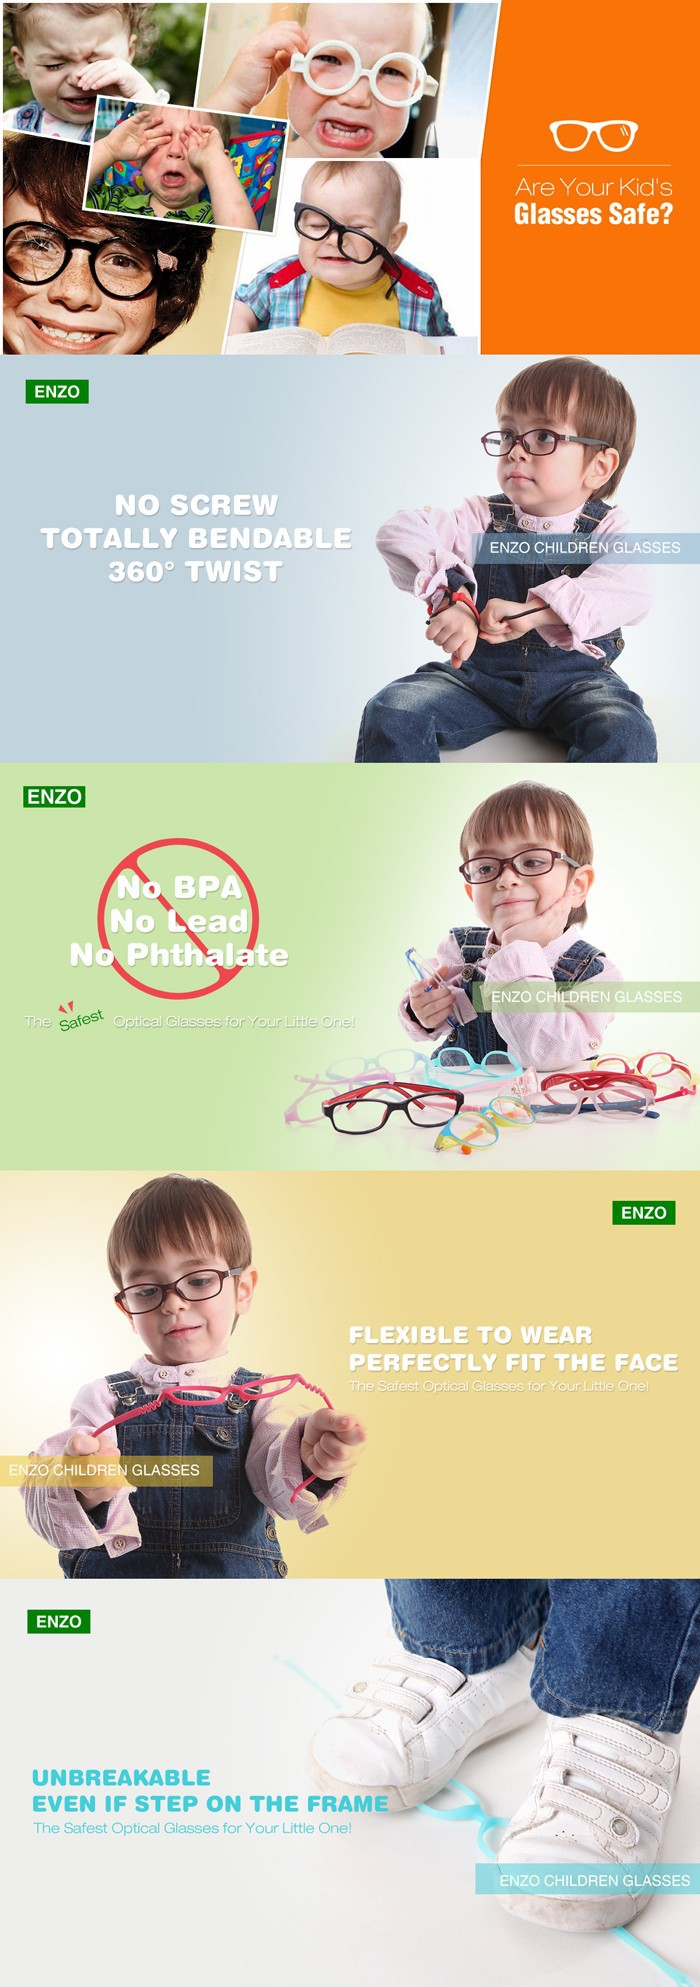 ENZO Children Glasses-1